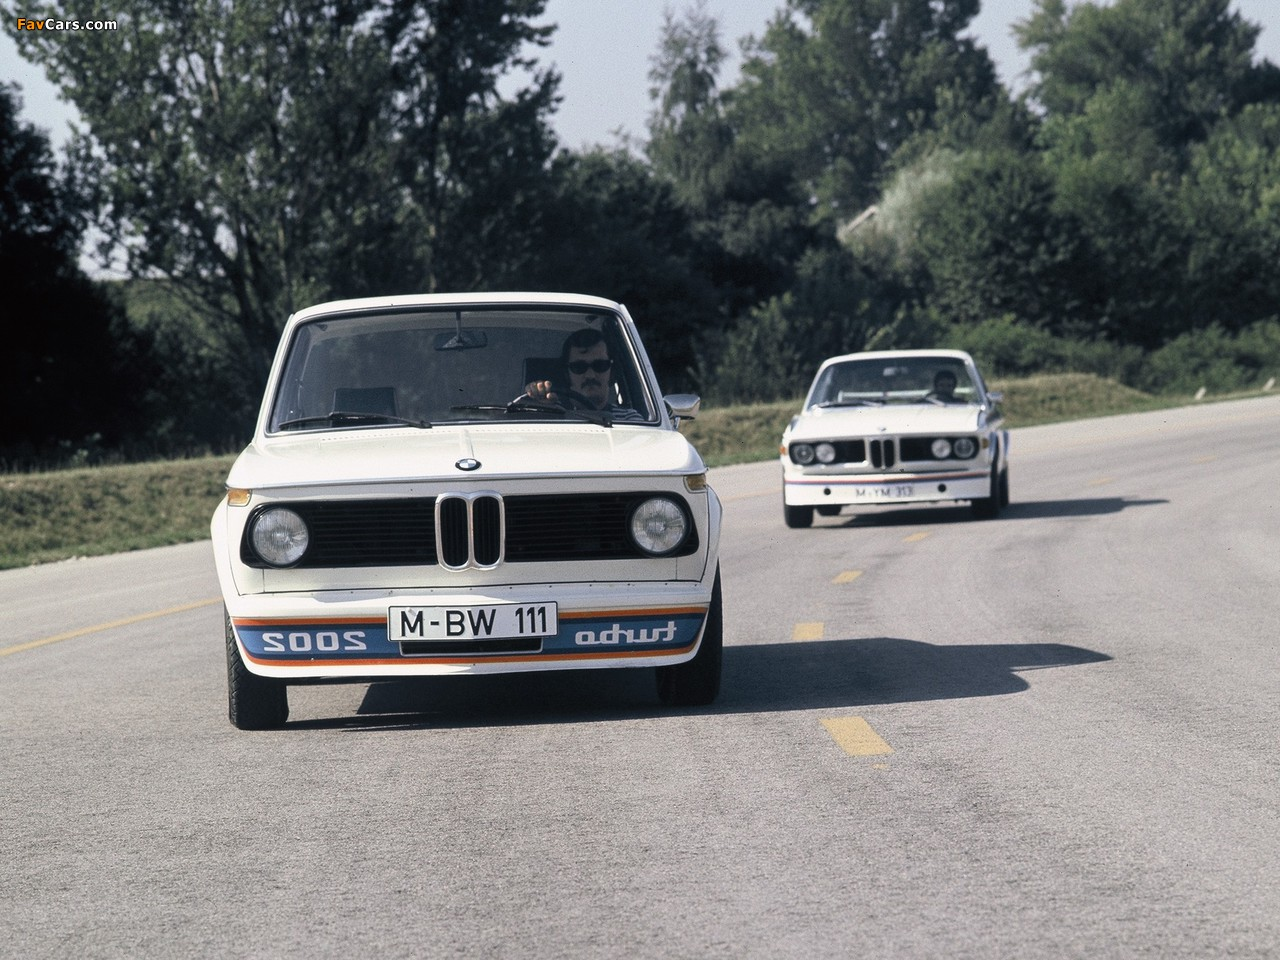 BMW wallpapers (1280 x 960)